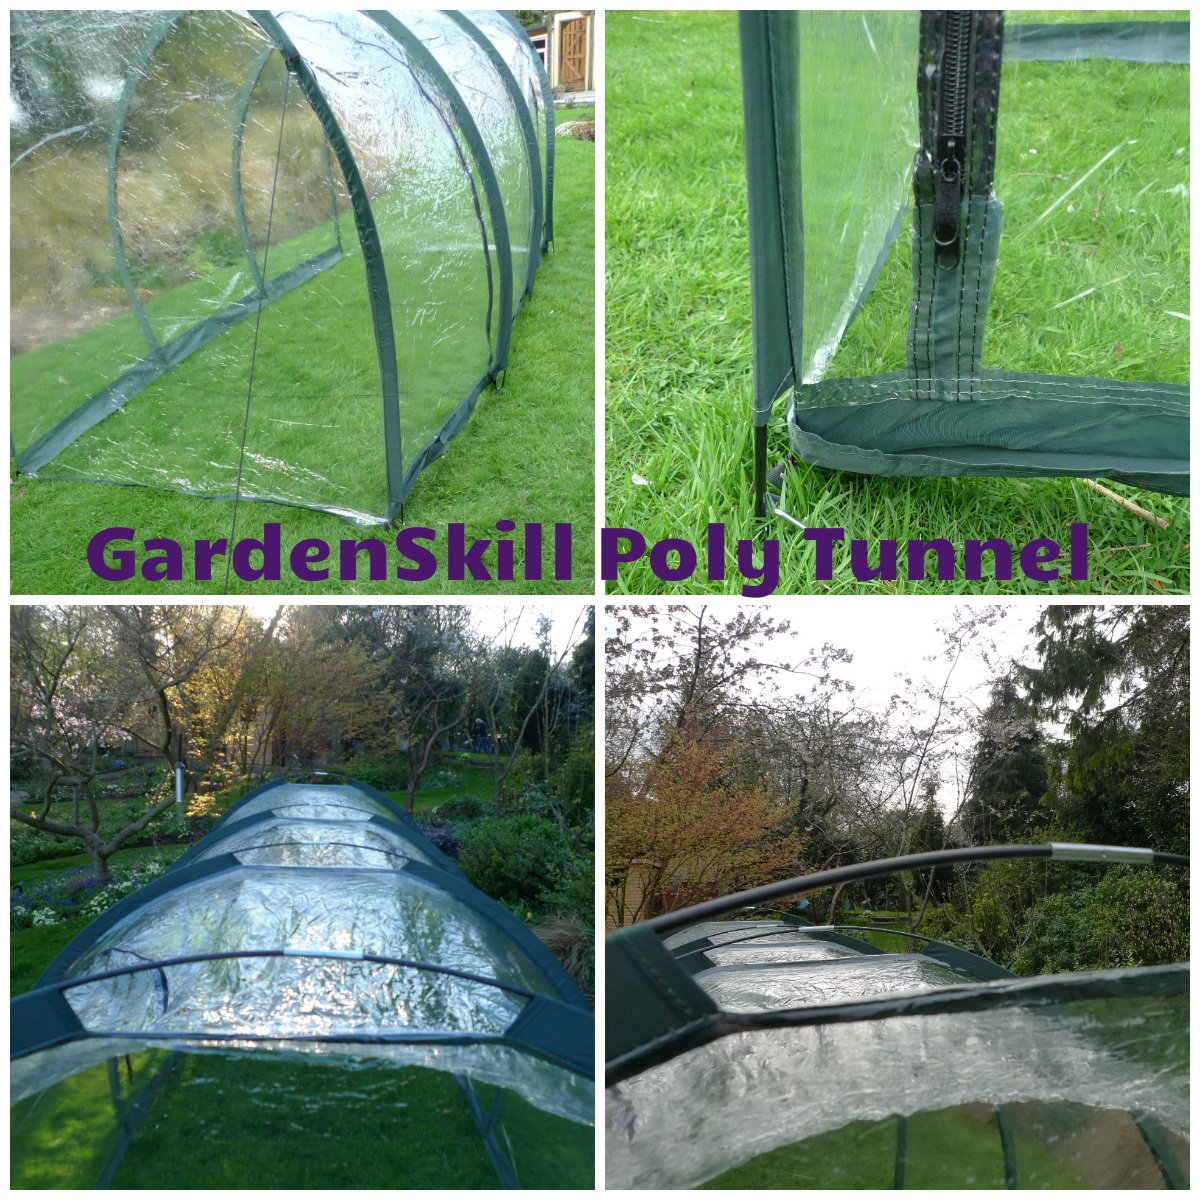 1.5m Wide and 1.5m High - Garden Giant Easy Poly Tunnel Greenhouse for Plant Protection (5m x 1.5m x 1.5m) GardenSkill